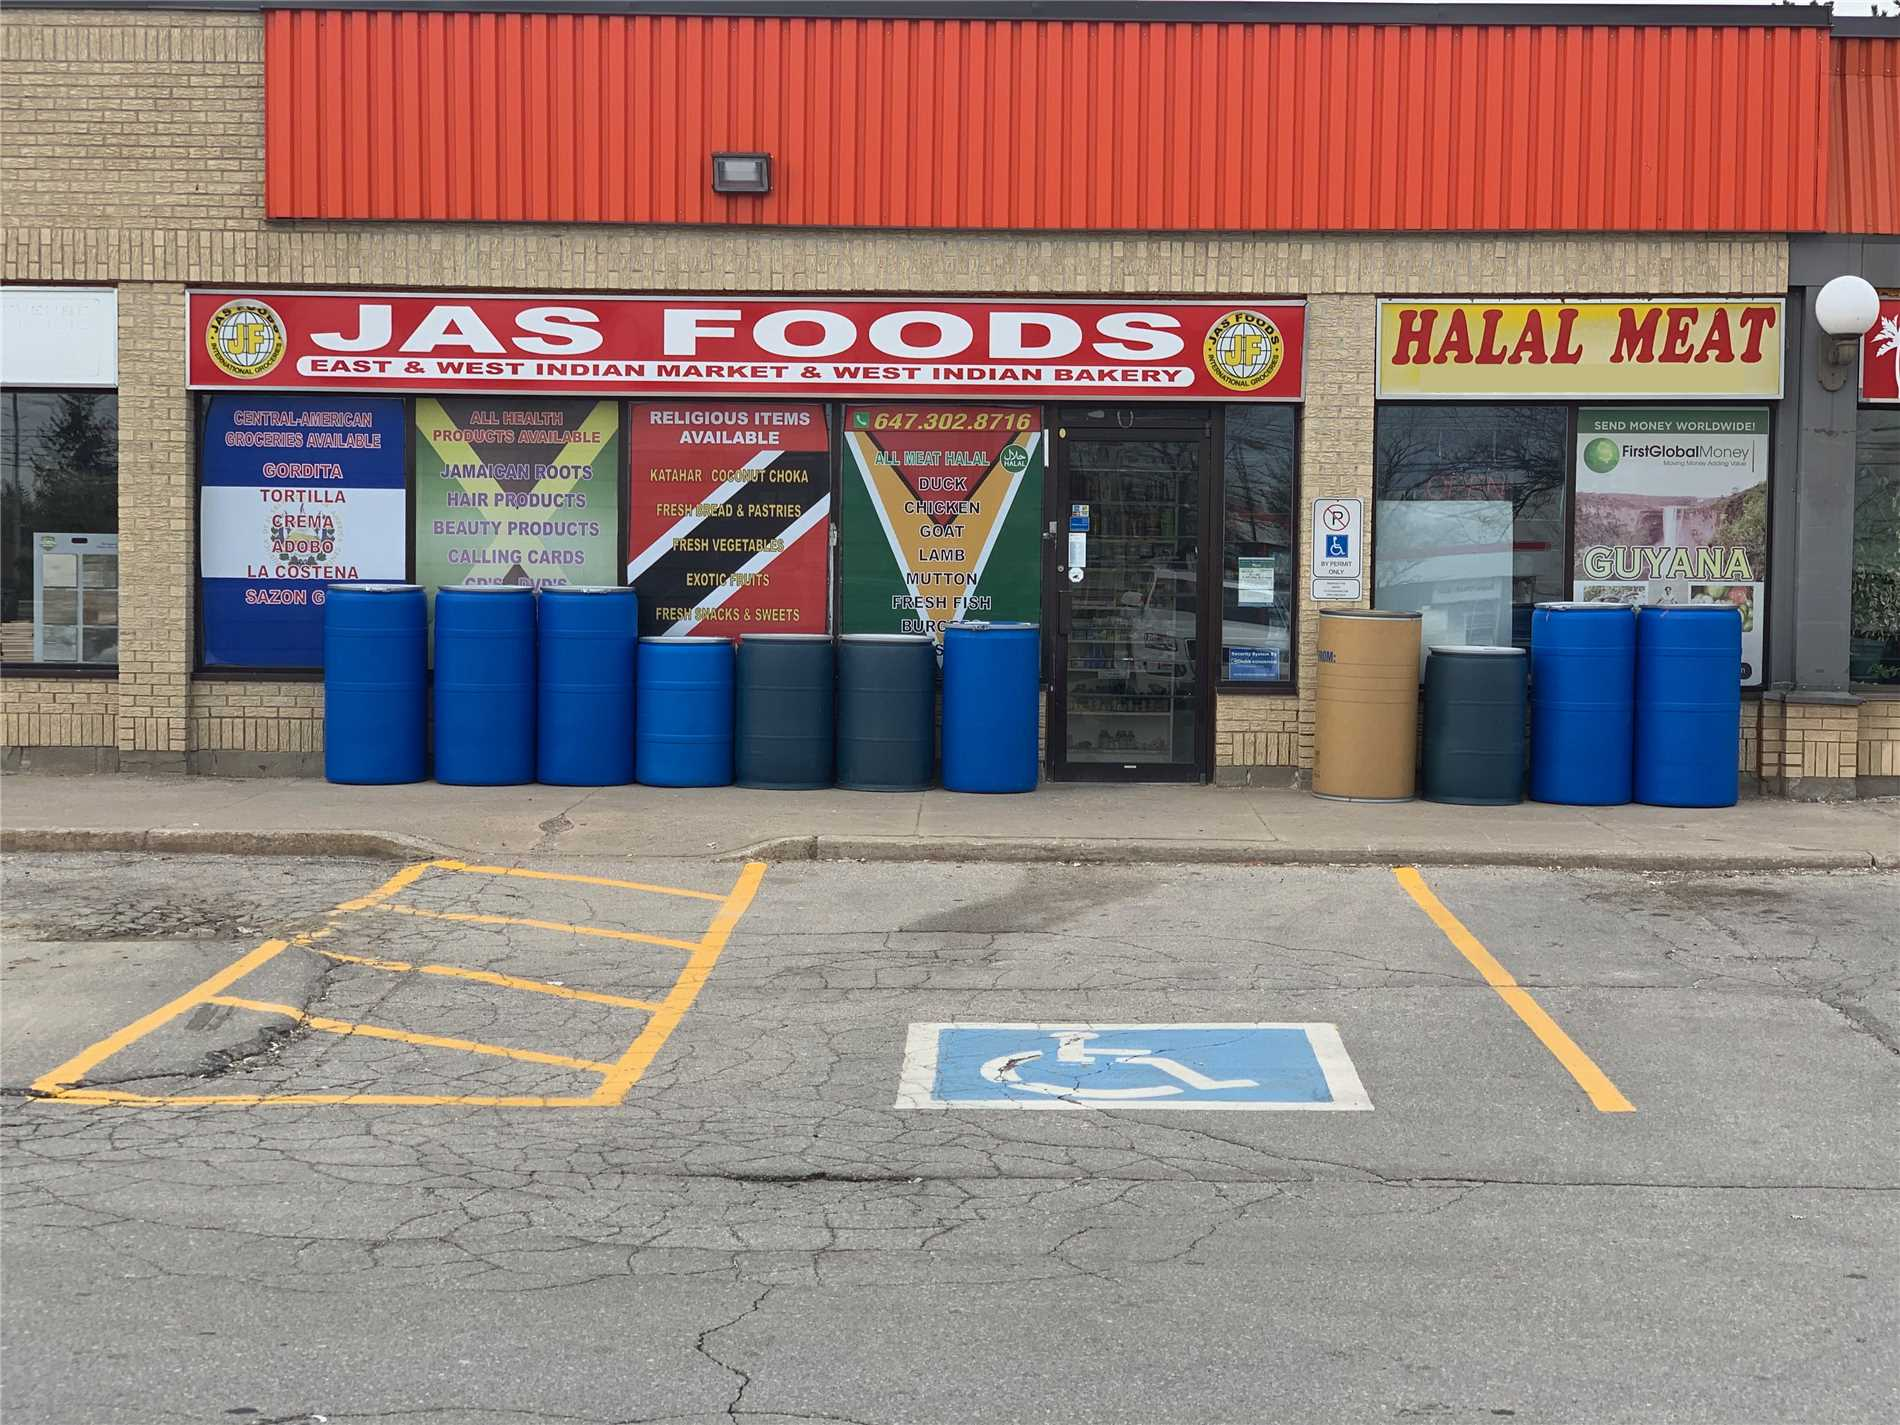 Very Busy West-Indian Grocery + Halal Meat Shop For Sale, Over 9 Years In Business, Excellent Location Next To Chrysler Plant, Super Busy Plaza, Make Money With No Stress, Dedicated Customer Base & No Need To Spend On Advertisement. Approx $21,000 Weekly Sale & $3390/Mth Rent Including Tmi.